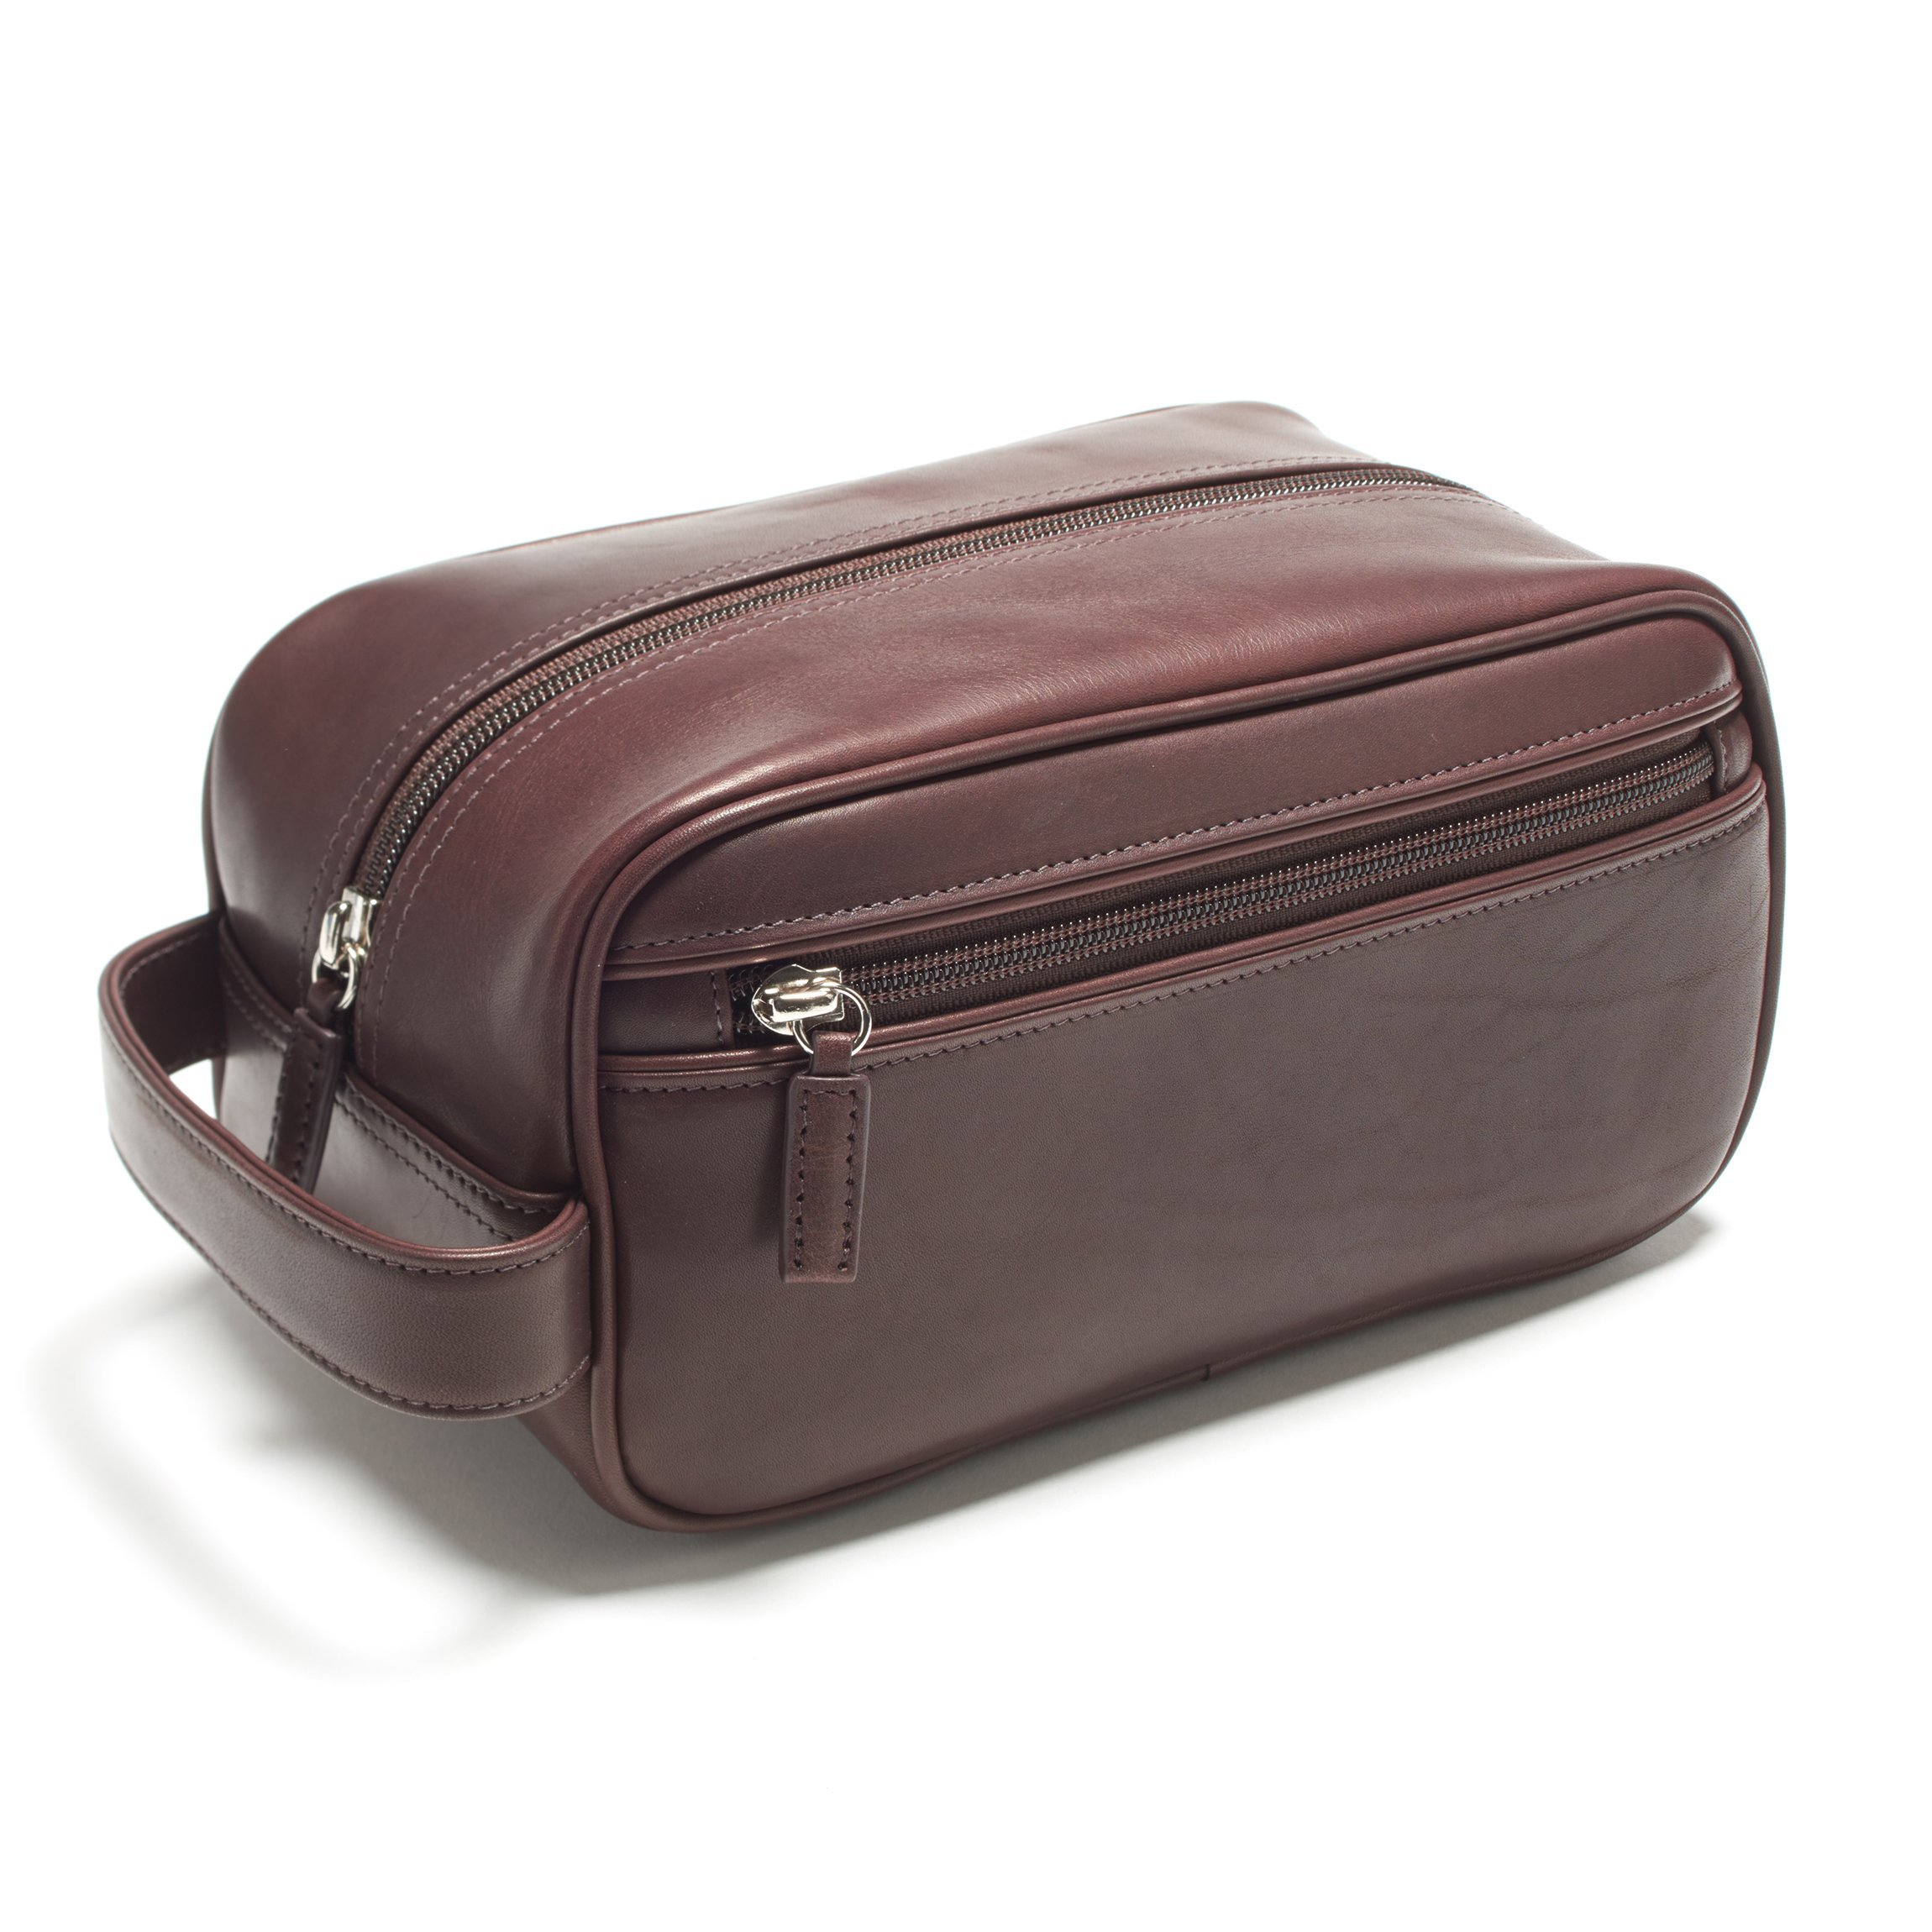 Leatherology Small Shave Toiletry Bag - Full Grain German Leather Leather - Mahogany (brown)